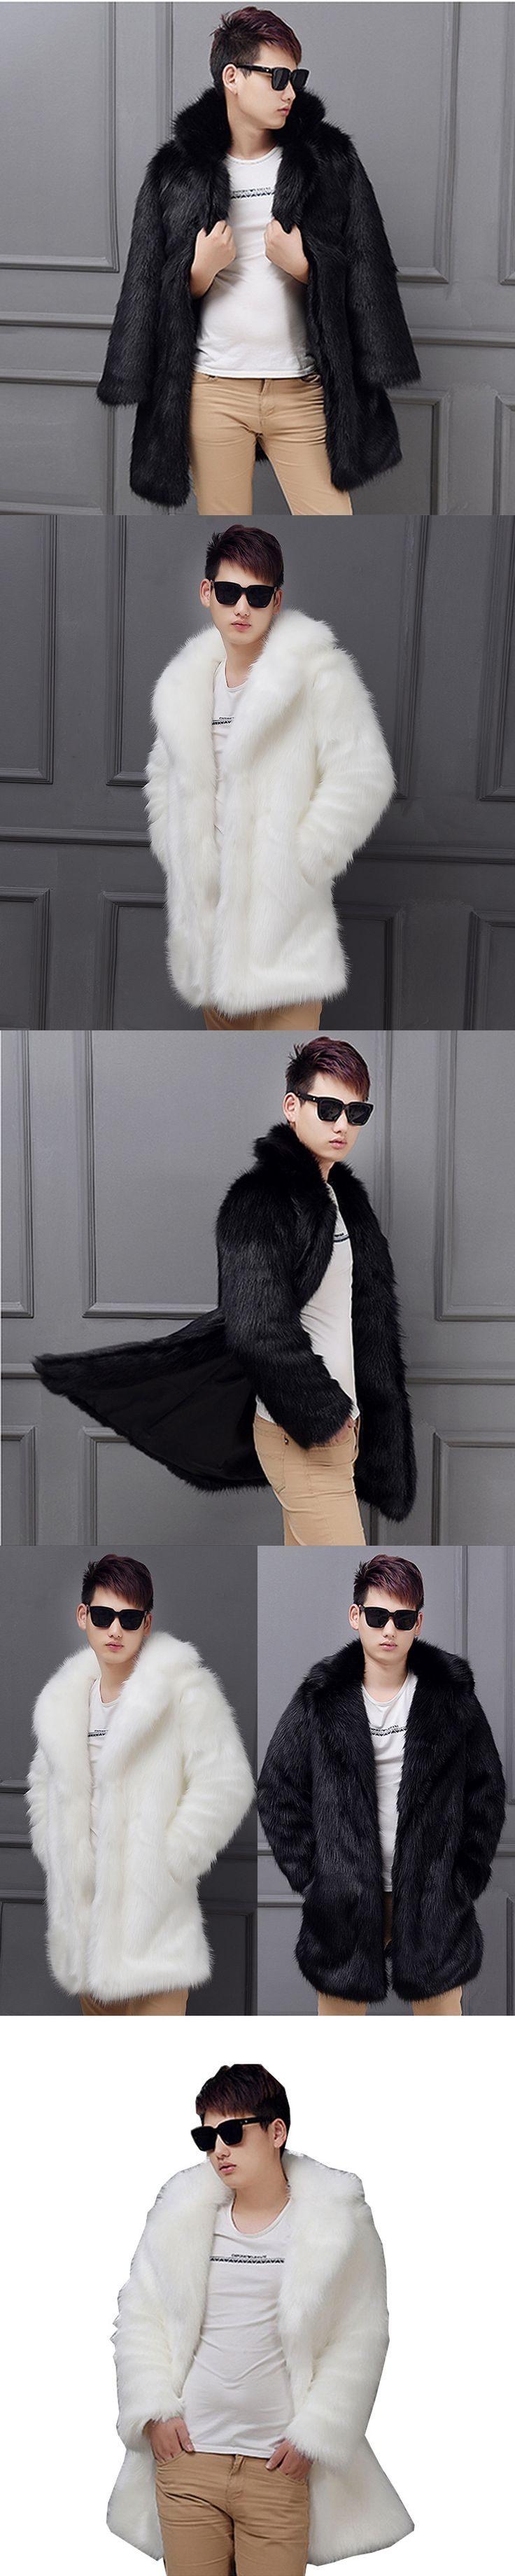 Mens Fur Coat Black and White Long Sleeve Winter Men Fur Coat Faux Fur Solid Slim Fox Fur Jacket Men Casual Coats Size S-6XL